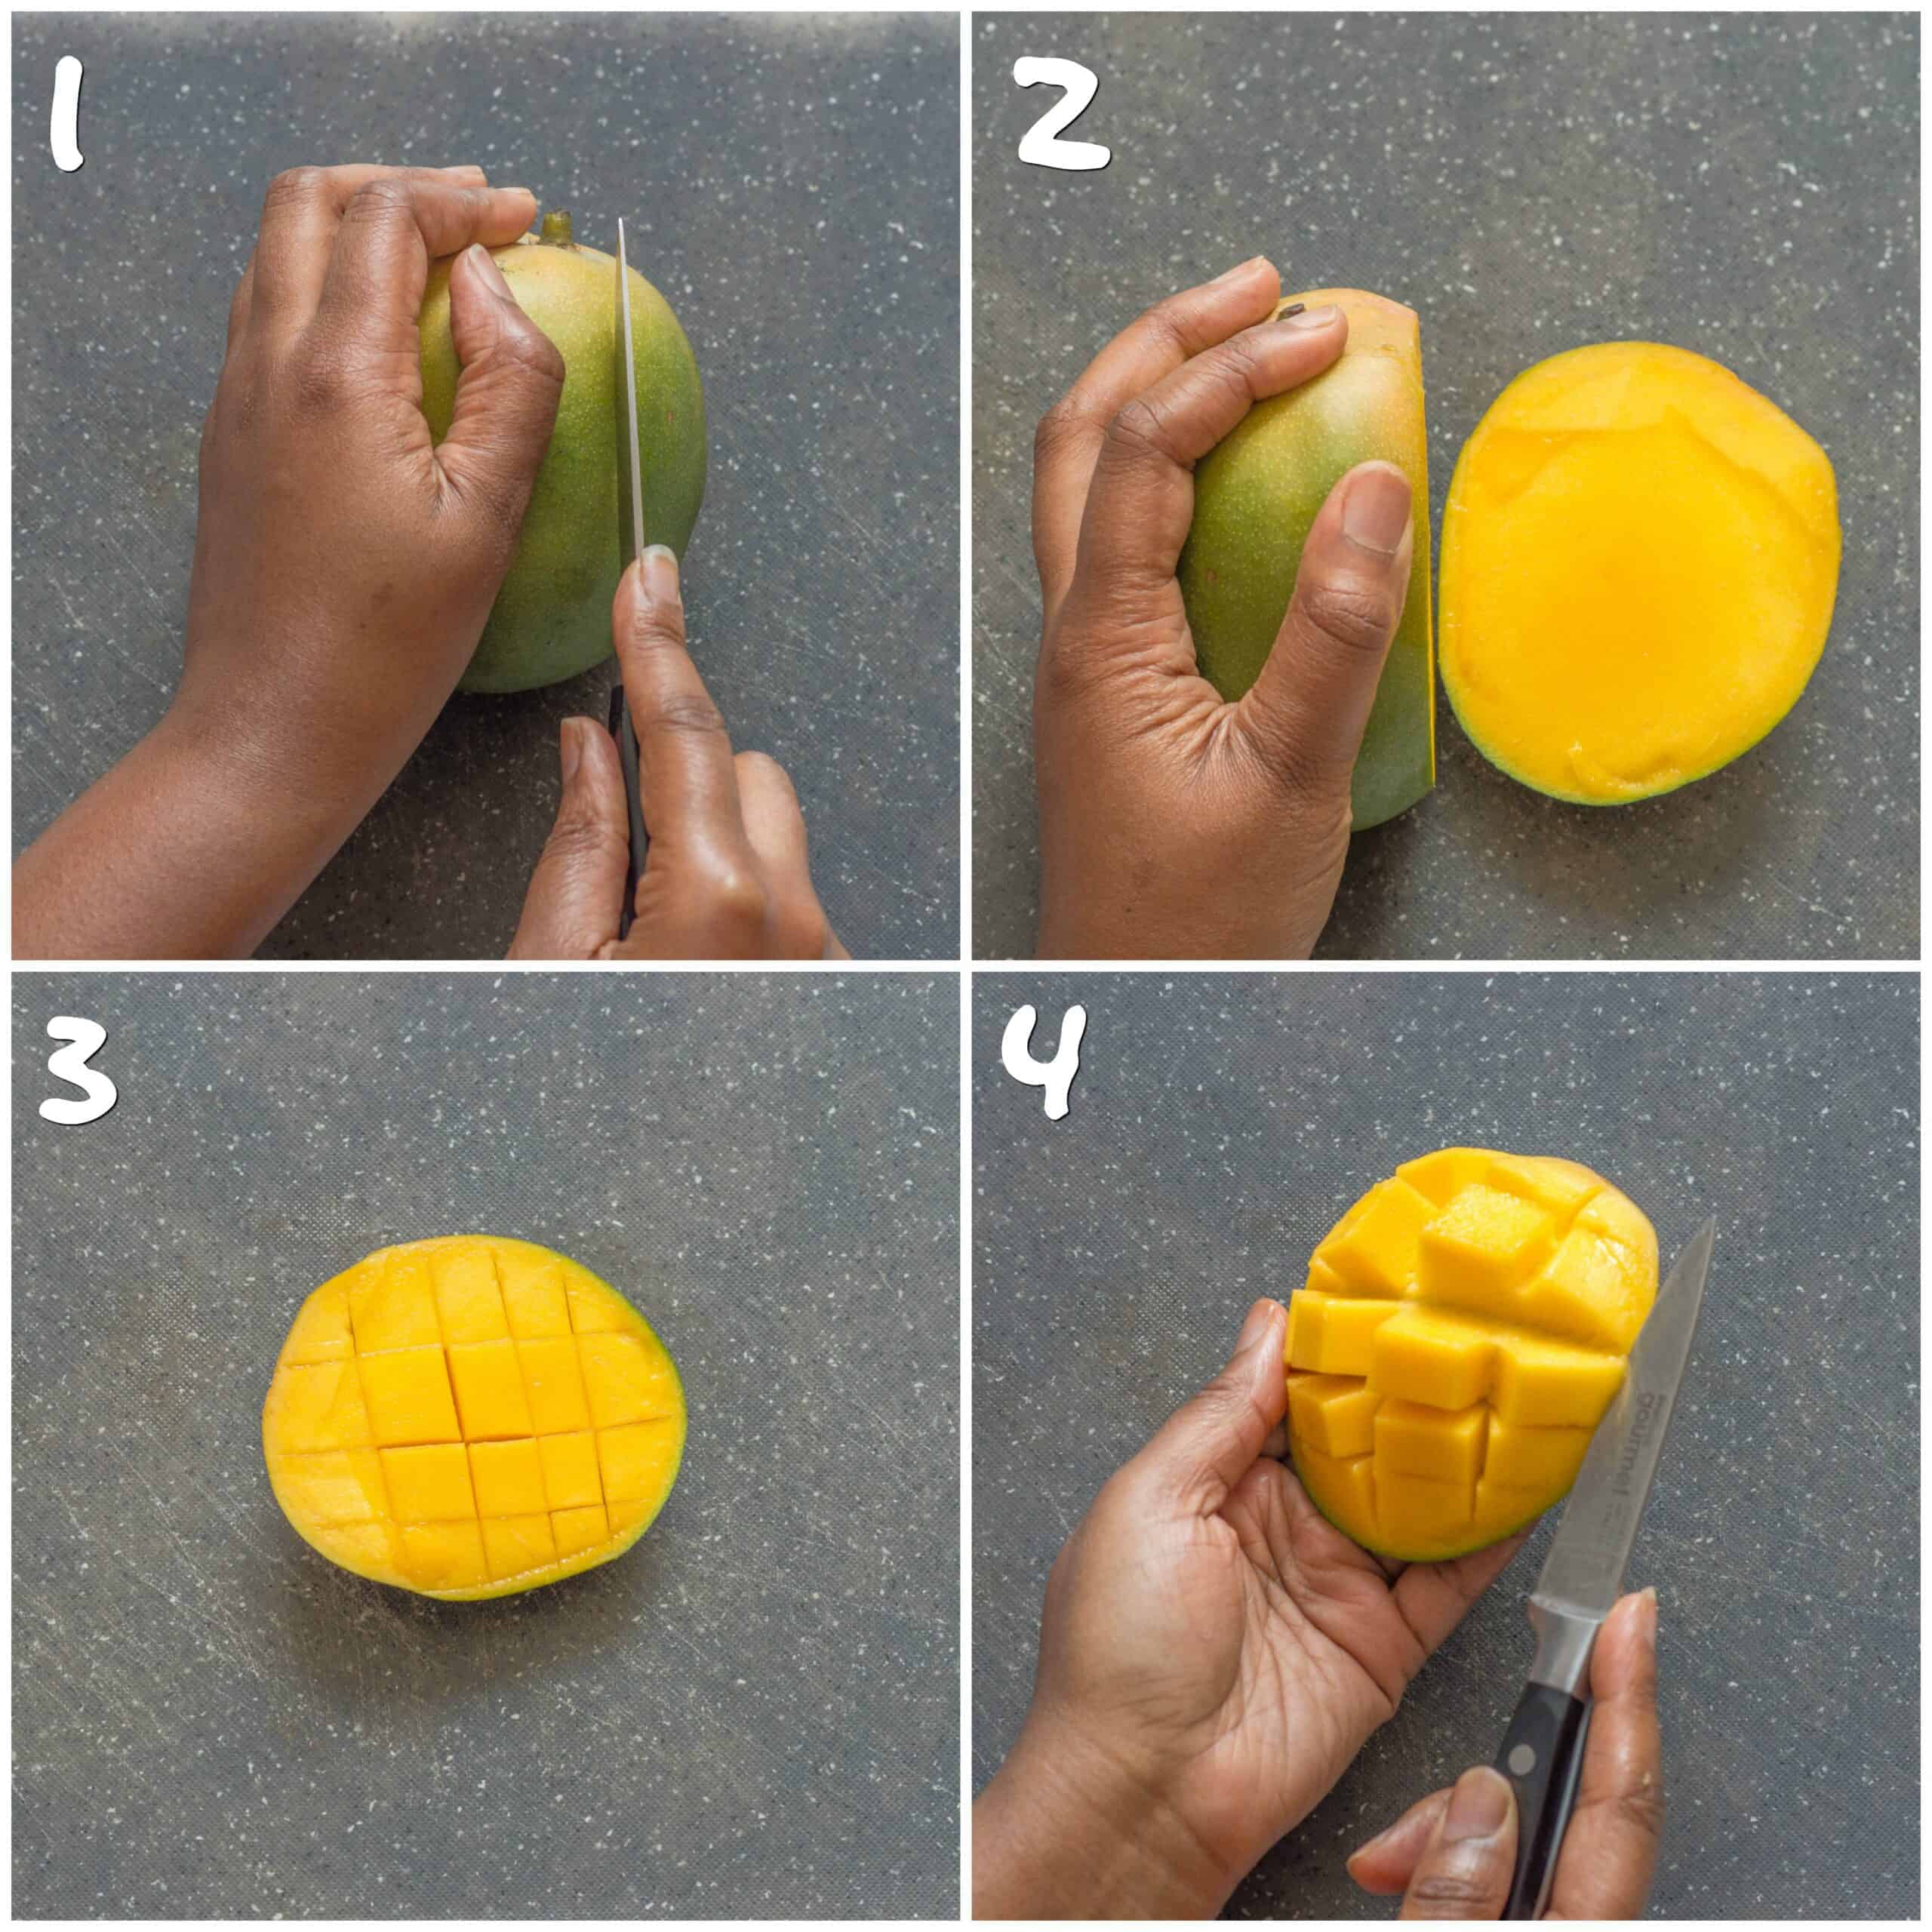 steps 1-4 showing how to cut a mango